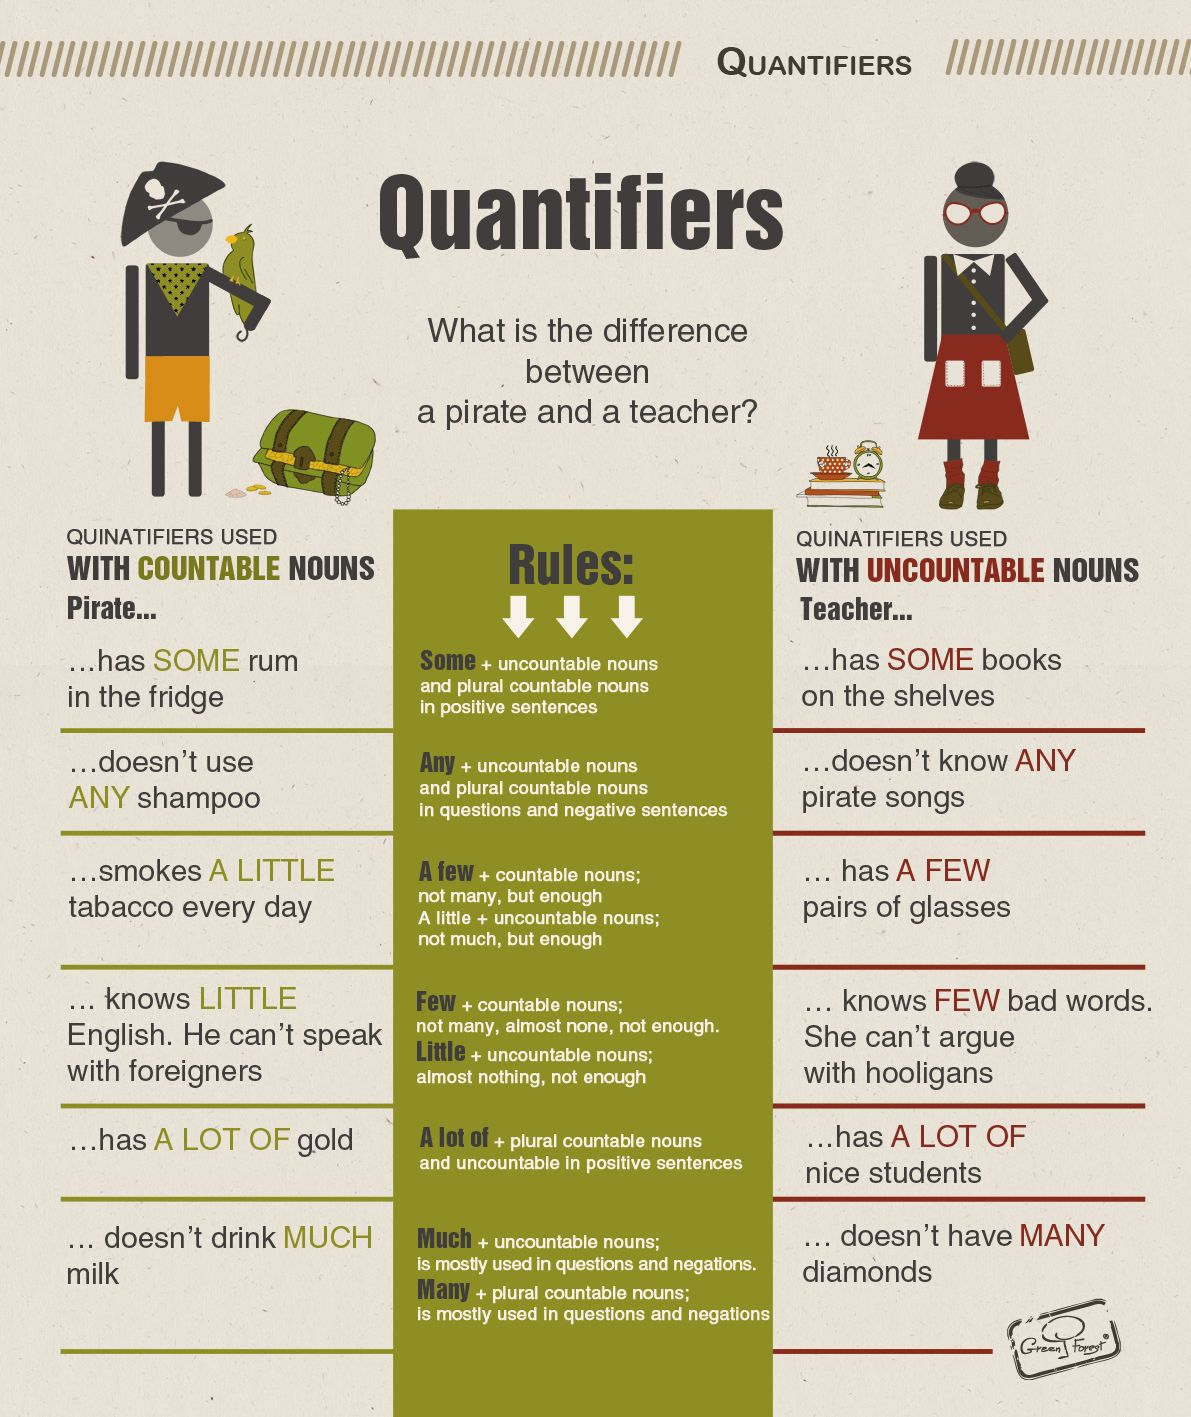 Quantifiers English Grammar Infographic Prepared By Olya Skhap Designed By Dasha Levchuk